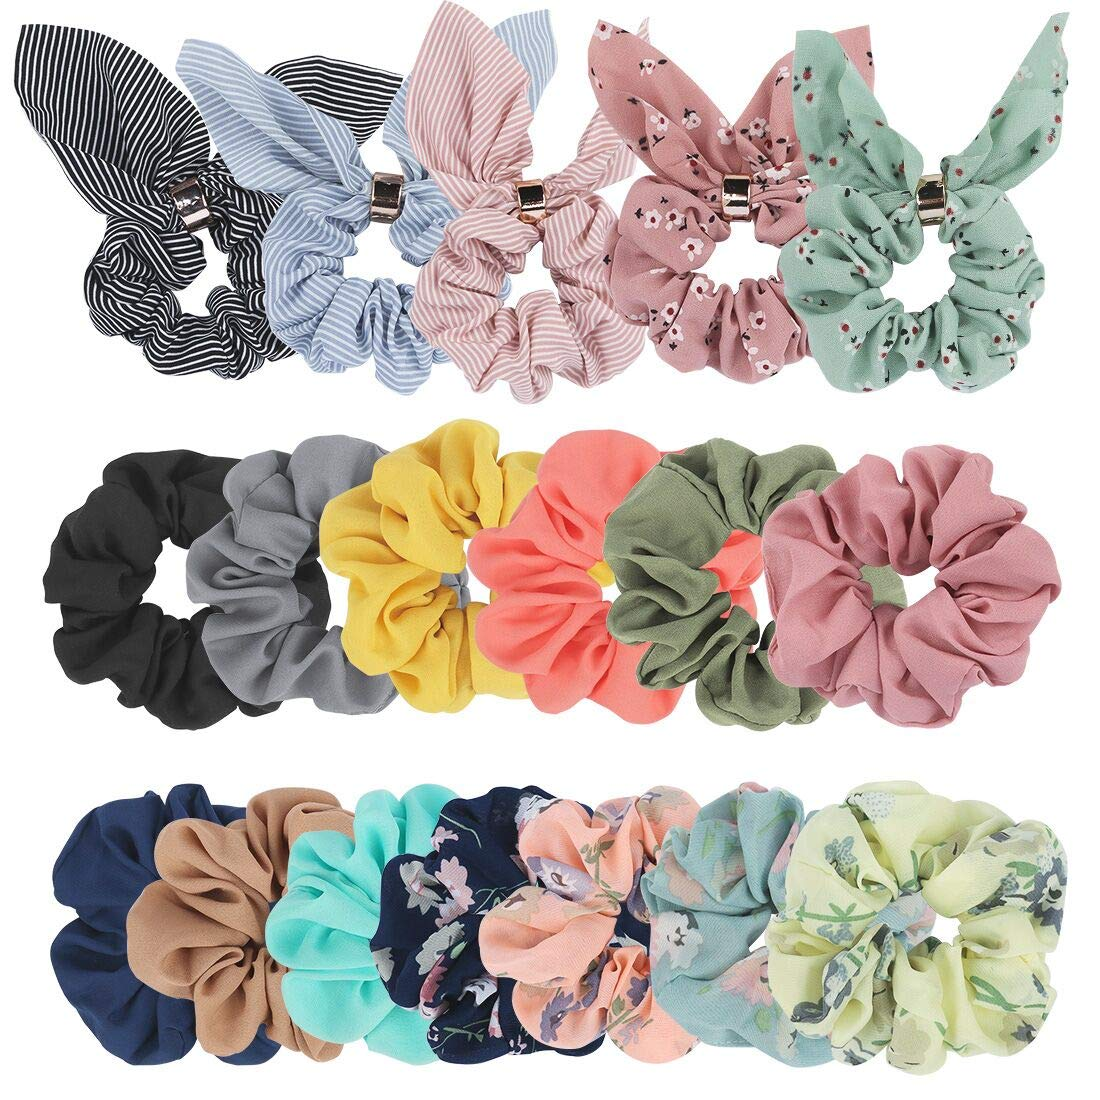 Ondder 10 Pack Scrunchies for Hair with Bow, Hair Scrunchies, Silk  Scrunchies, Satin Scrunchies, Bow Scrunchies for Hair, Hair Scrunchies for  Women,